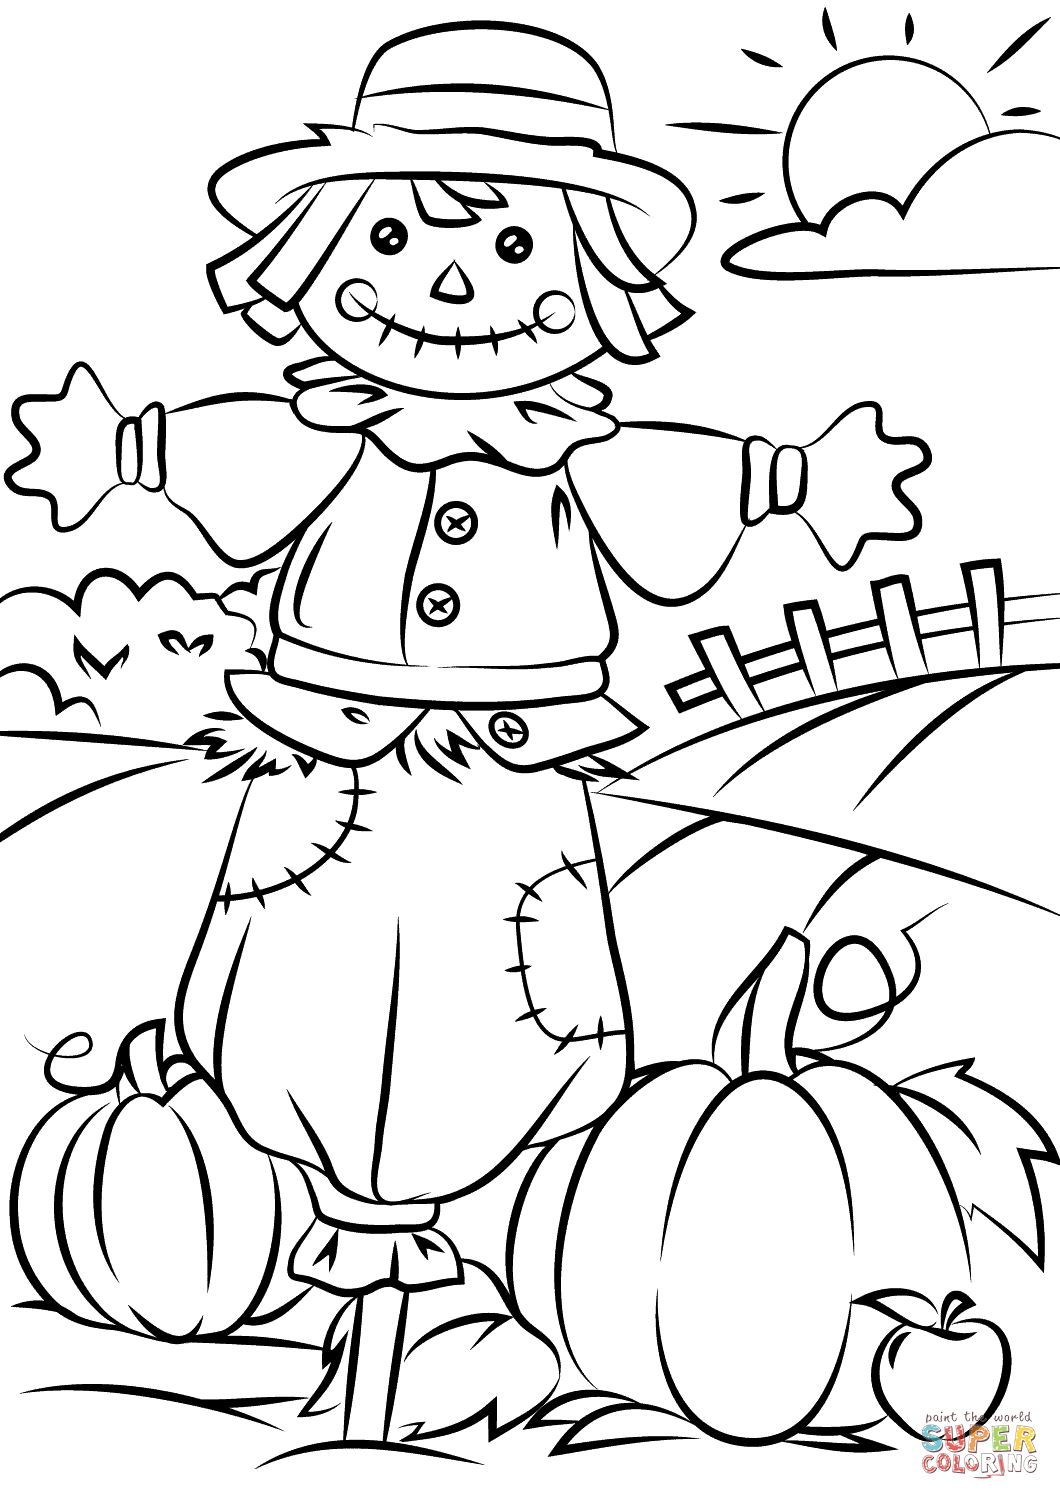 Autumn Scene With Scarecrow Coloring Page | Free Printable Coloring - Free Printable Autumn Coloring Sheets